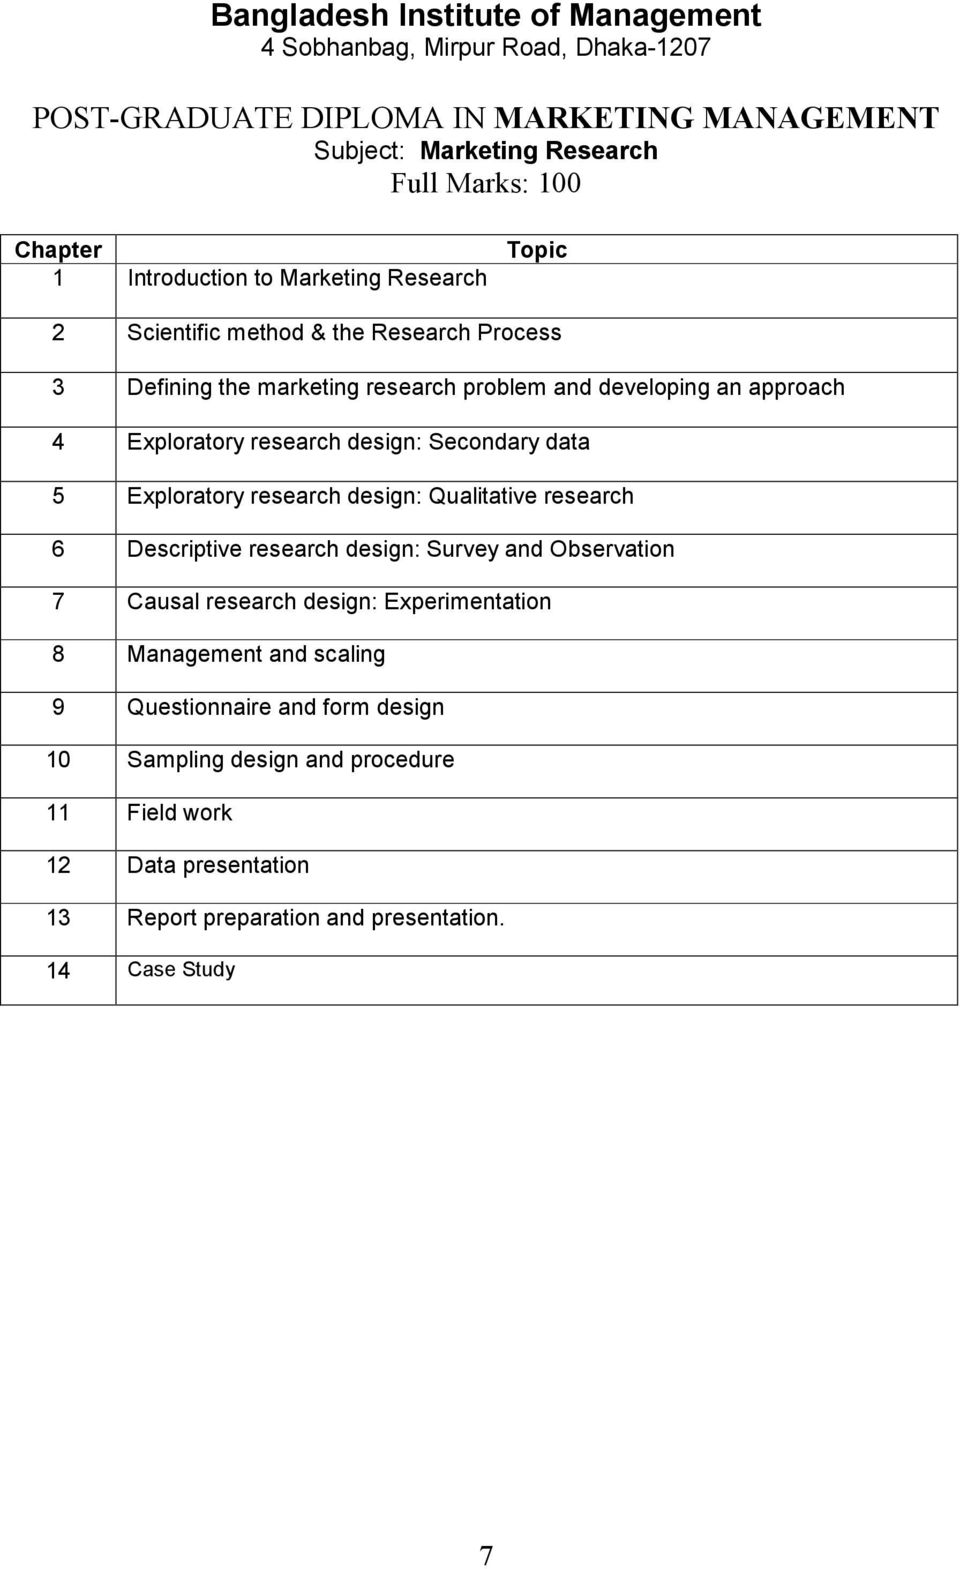 research 6 Descriptive research design: Survey and Observation 7 Causal research design: Experimentation 8 Management and scaling 9